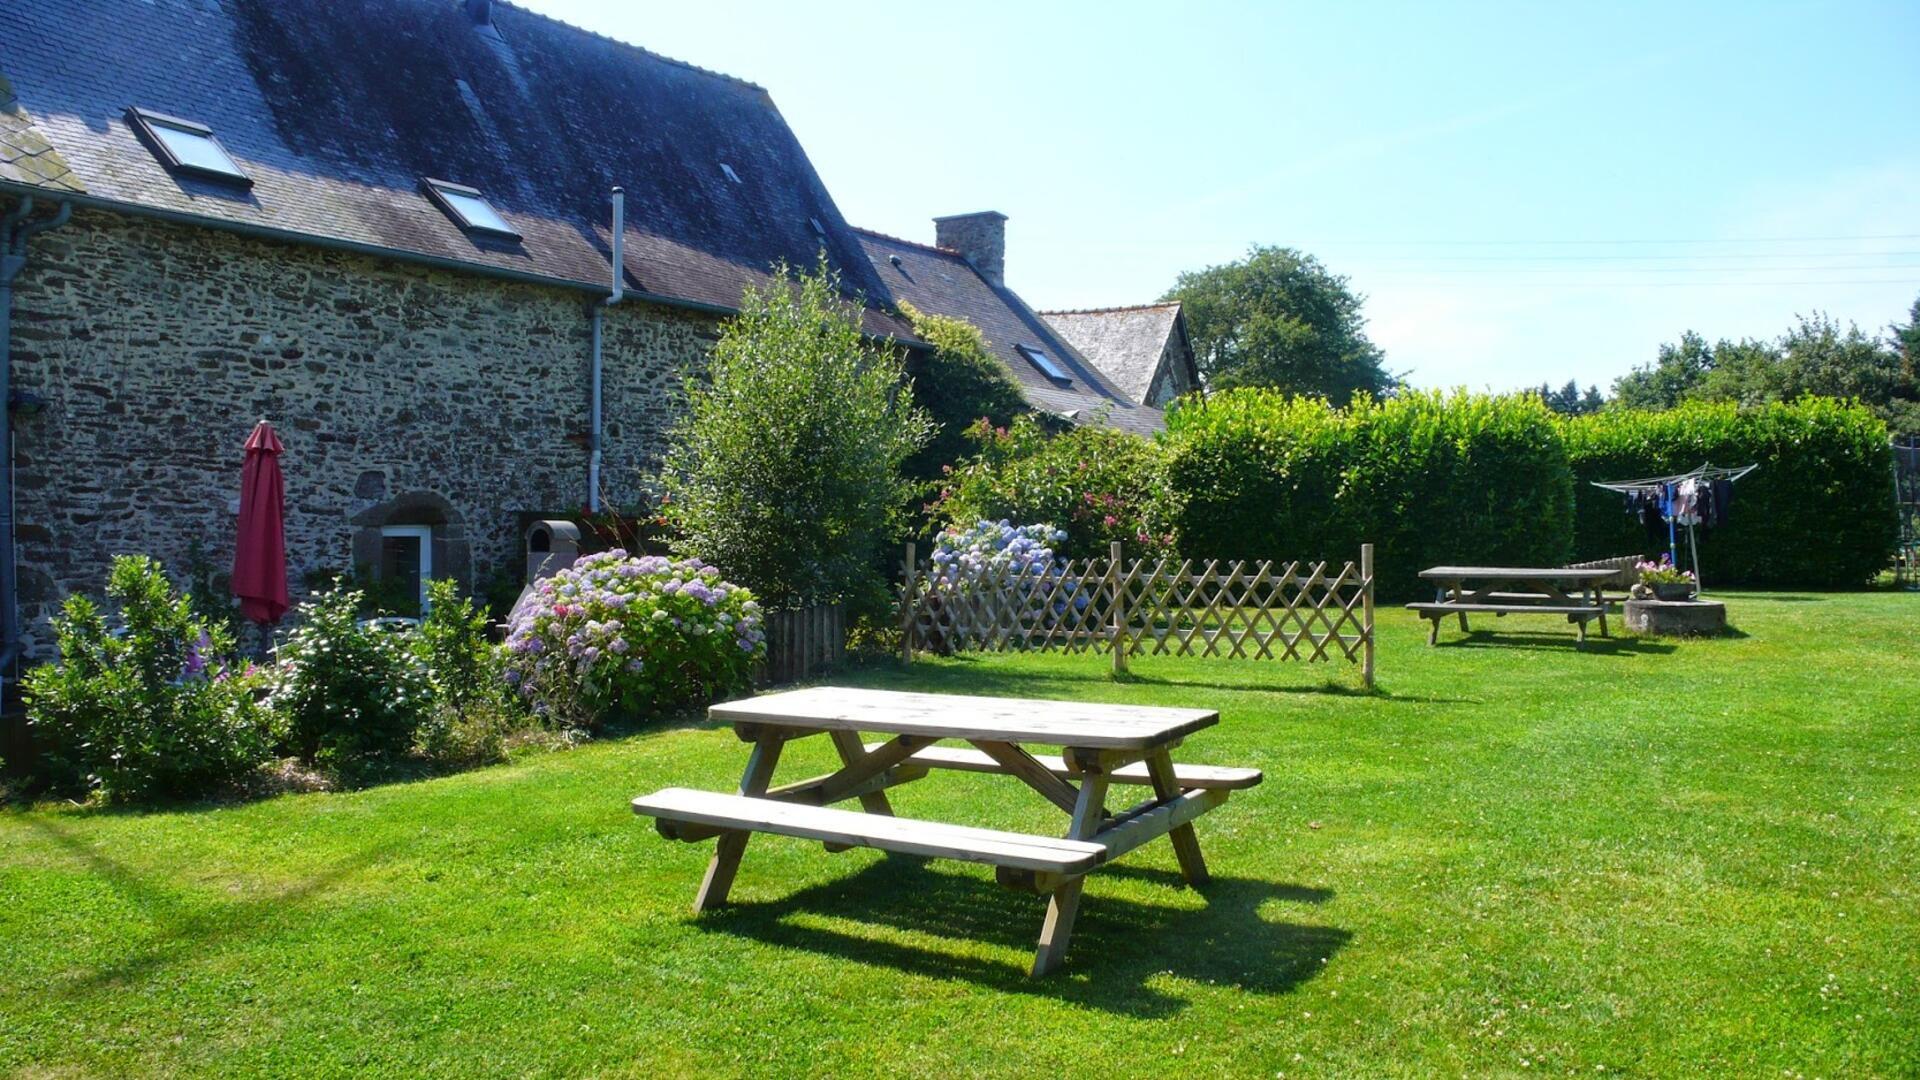 2 Bedroom Gite complex in Brittany, France